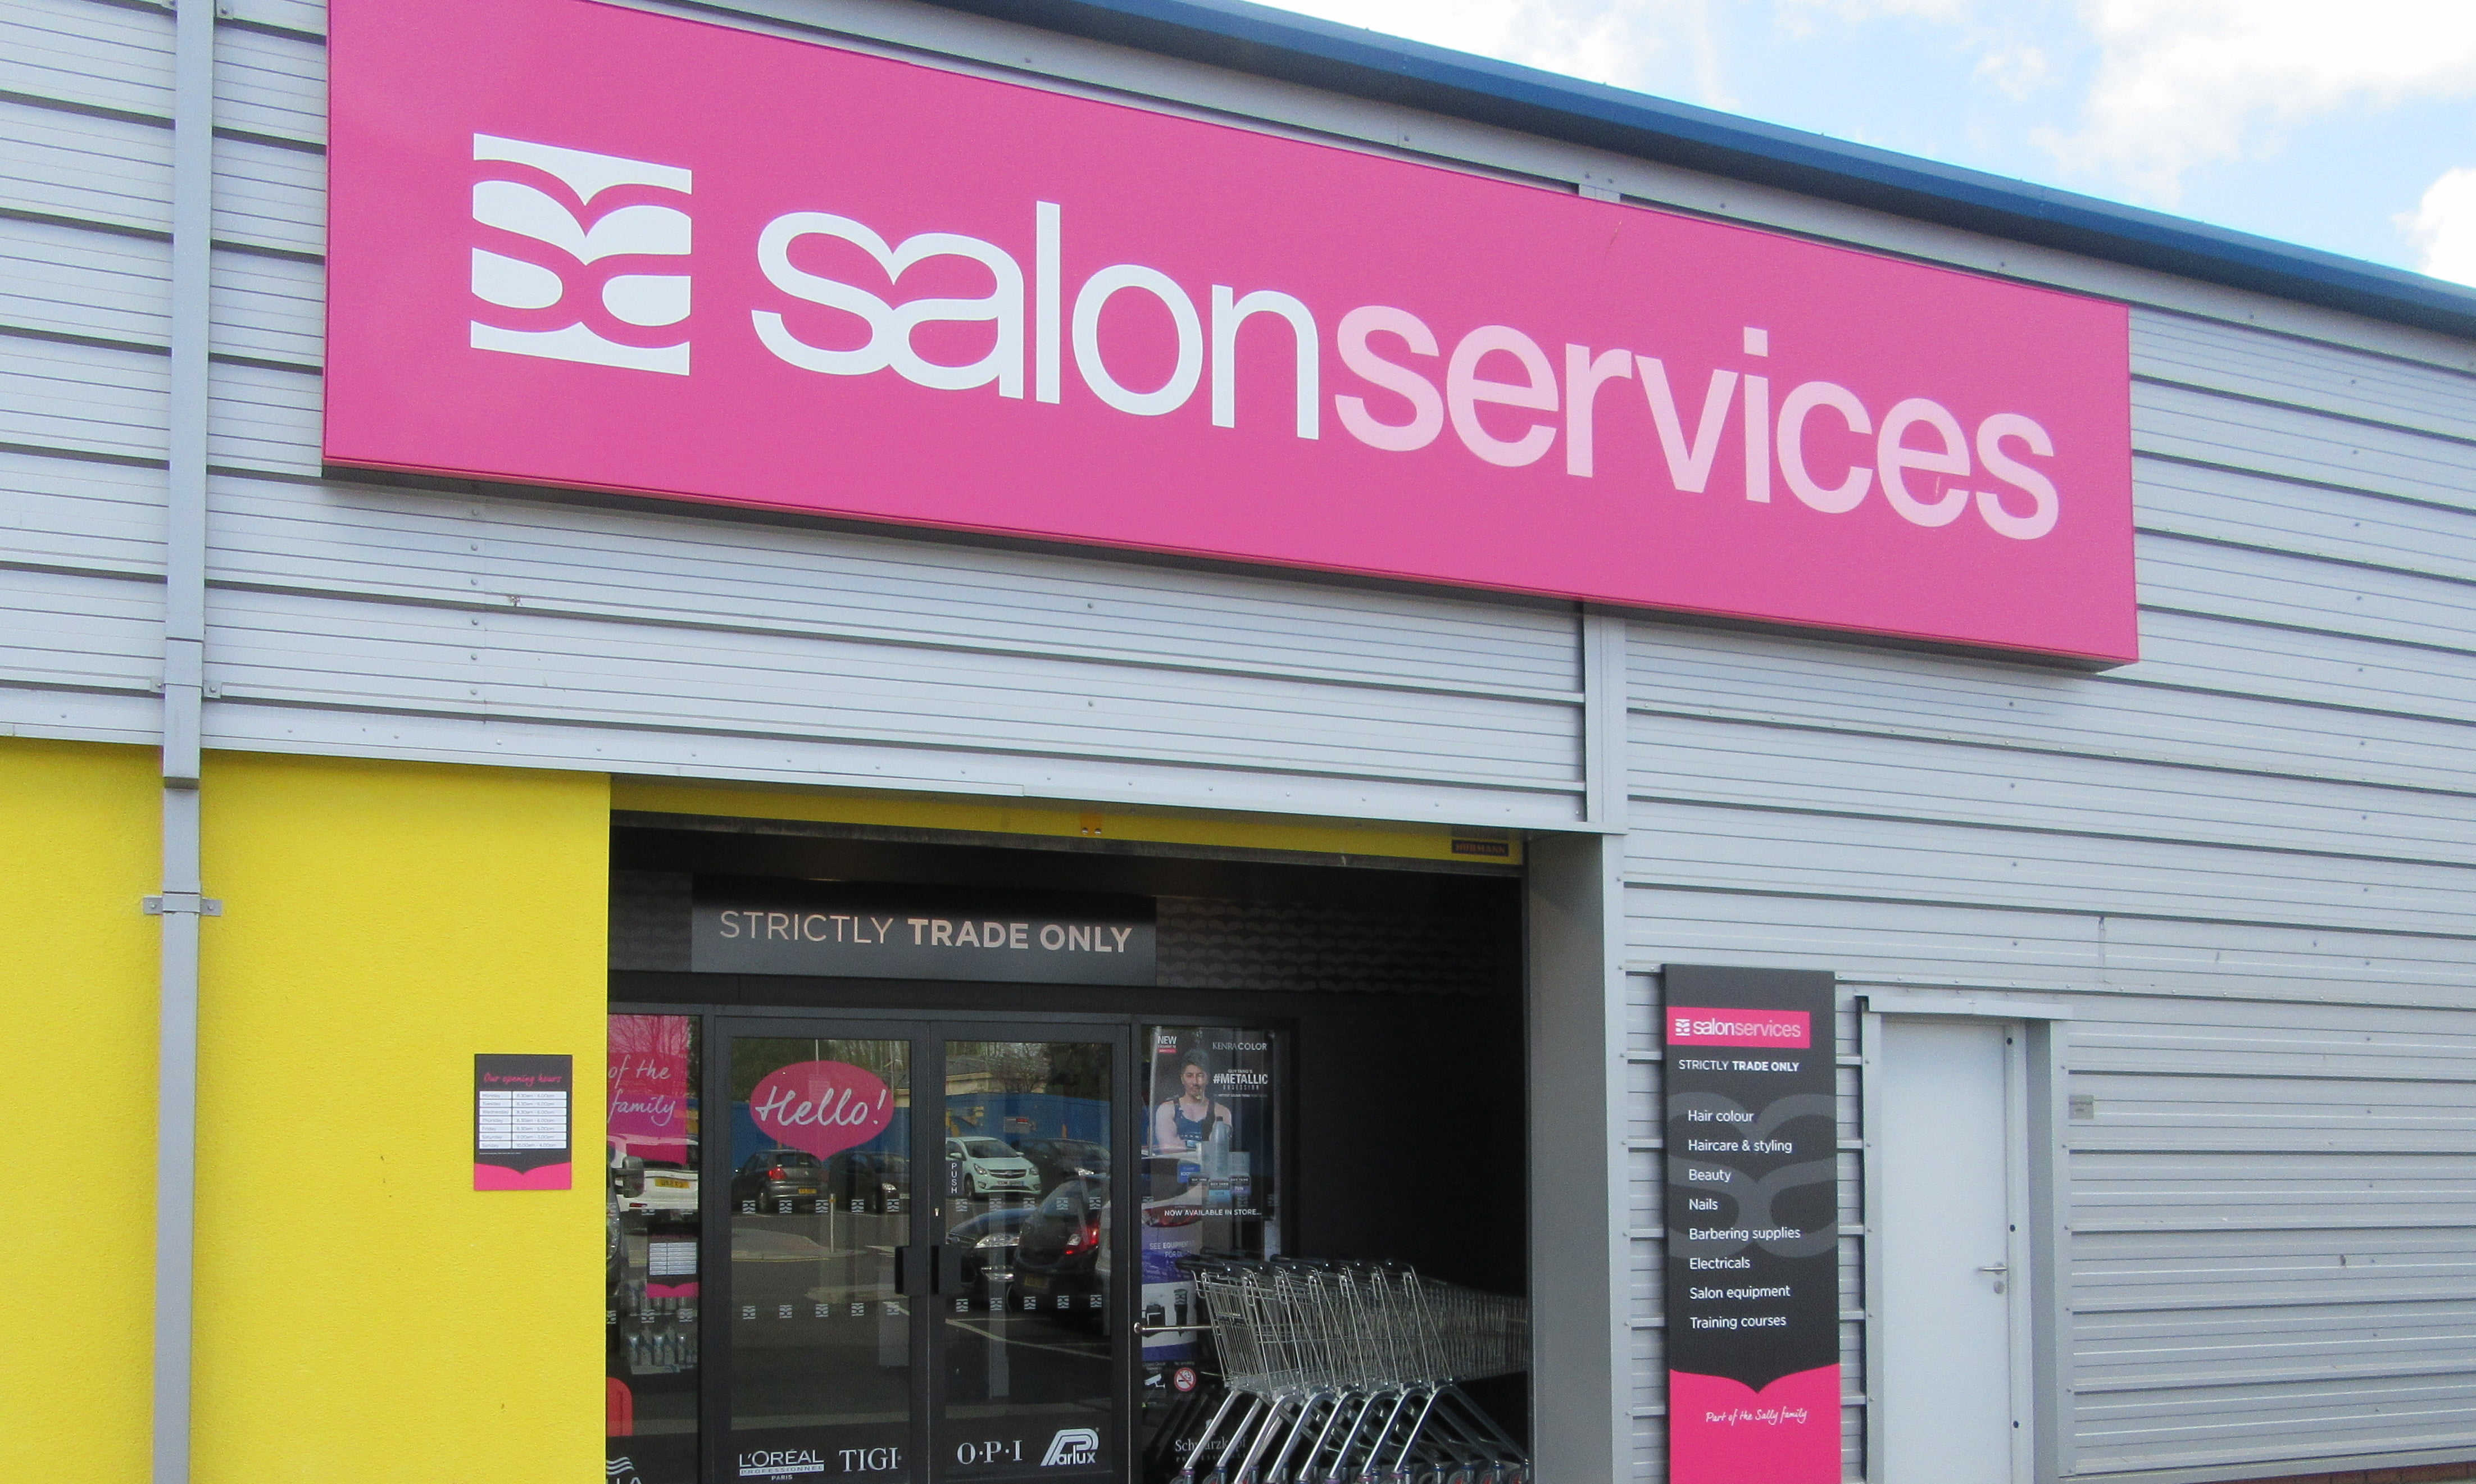 Trade only sally salon services opens in glasgow modern for About salon services